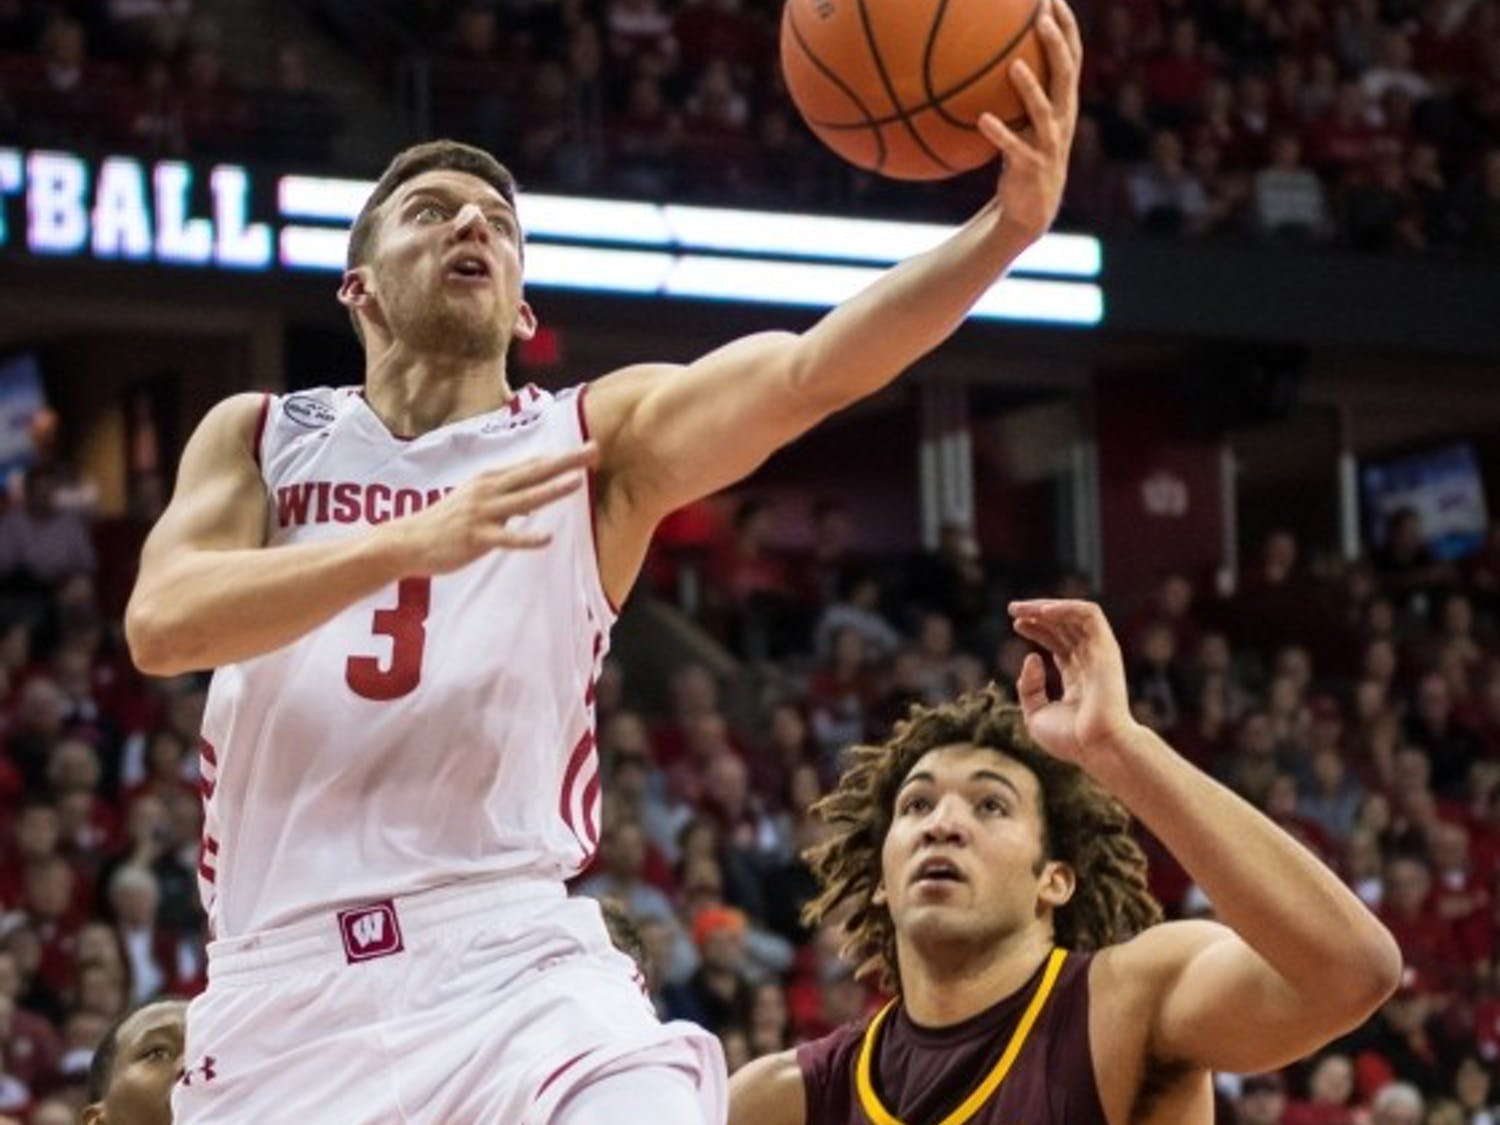 Minnesota getting a No. 5 seed is incredulous, considering the Badgers beat the Golden Gophers twice, including dismantling them just over a week ago.